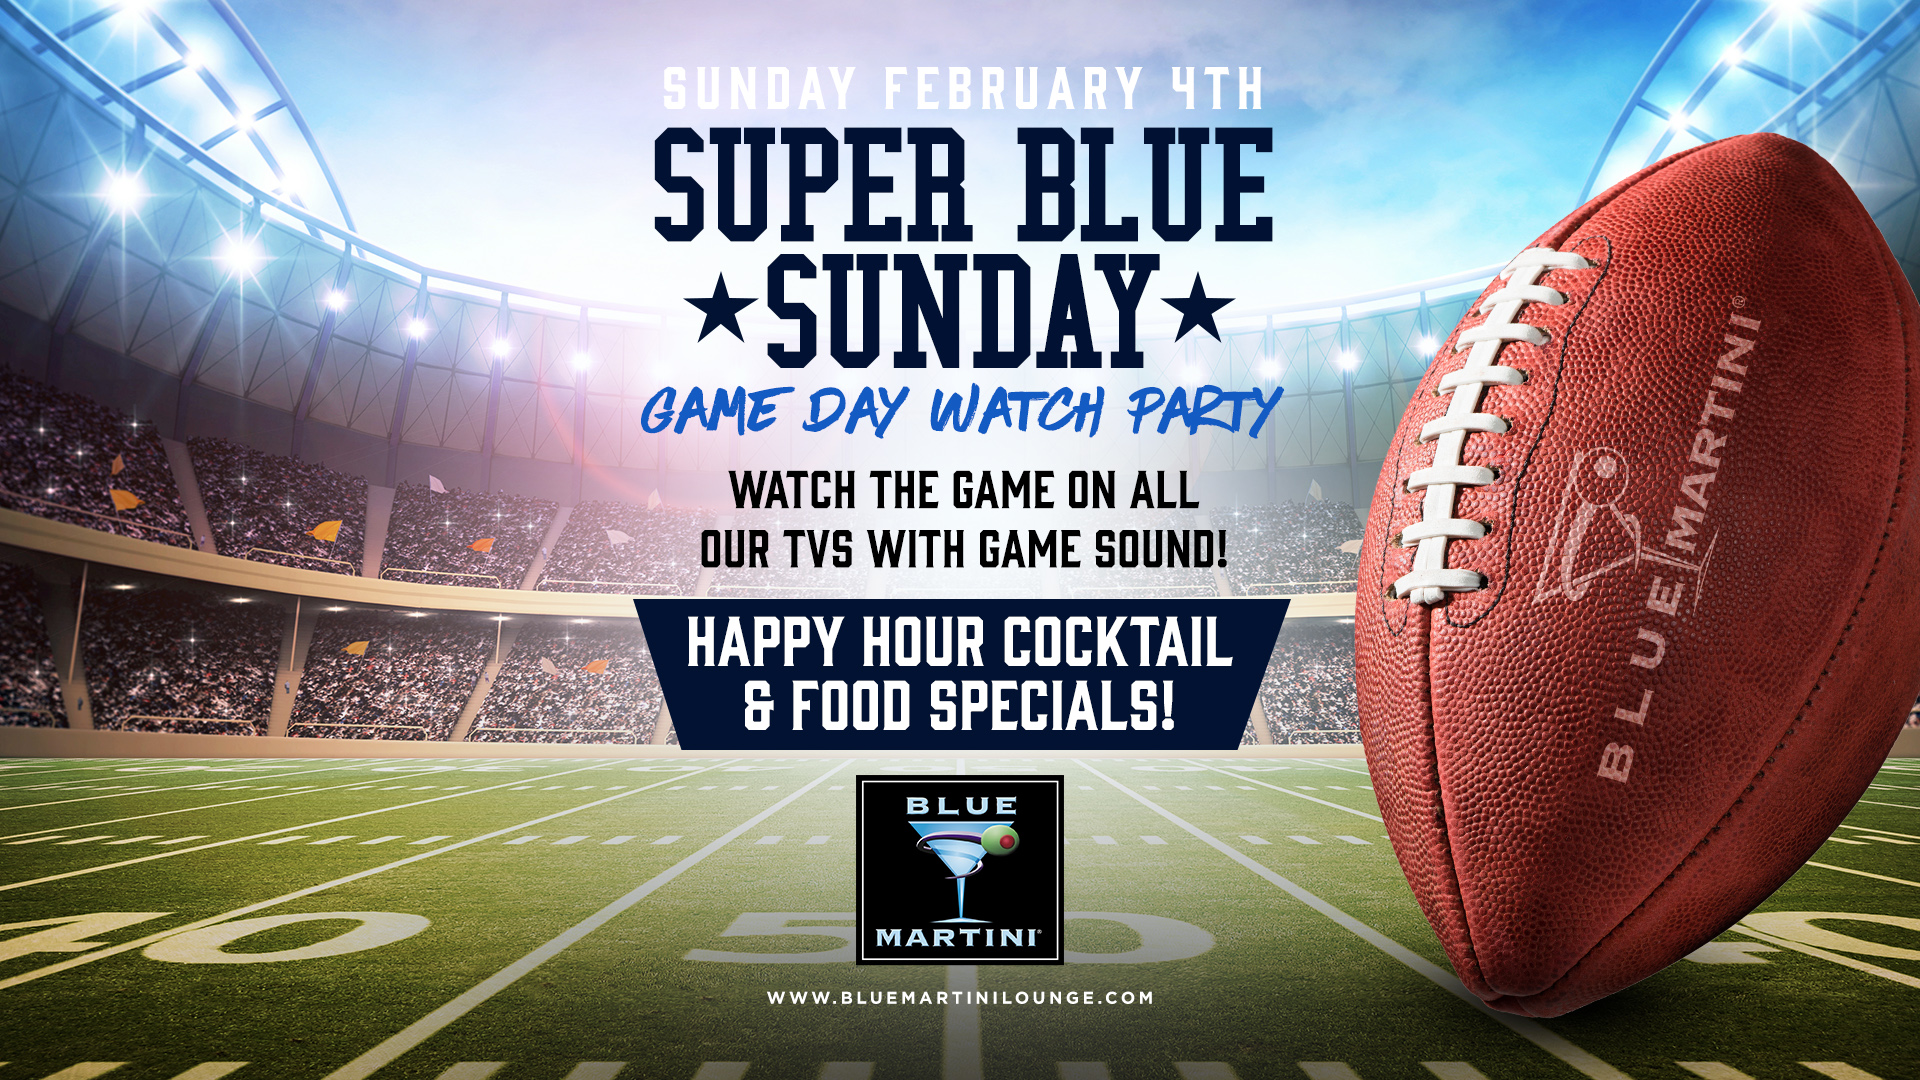 Super Bowl Game Day Watch Party at Blue Martini